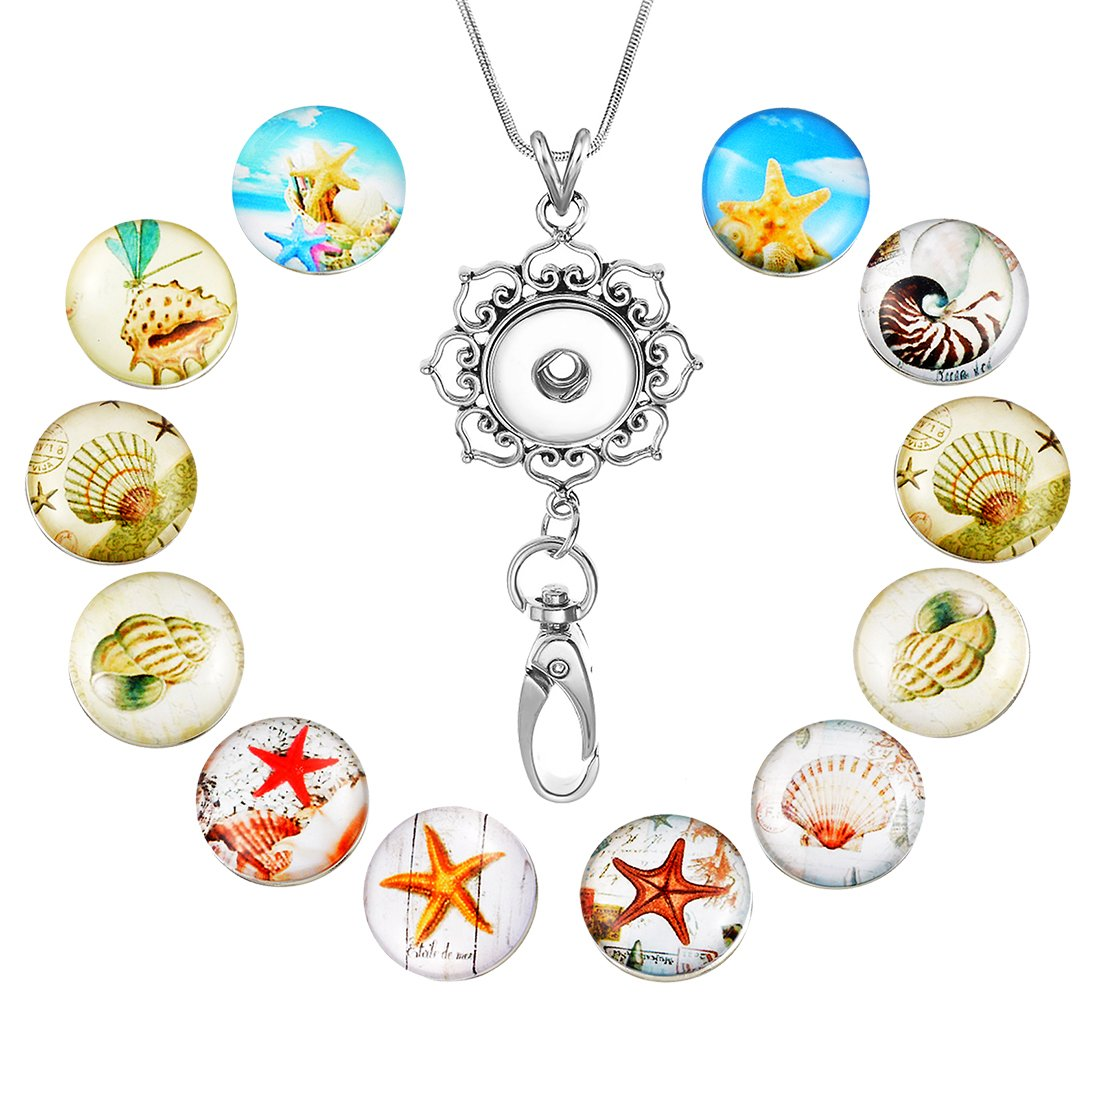 Souarts Womens Office Lanyard ID Badges Holder Necklace with 12pcs Snap Charms Jewelry Pendant Clip (Starfish)